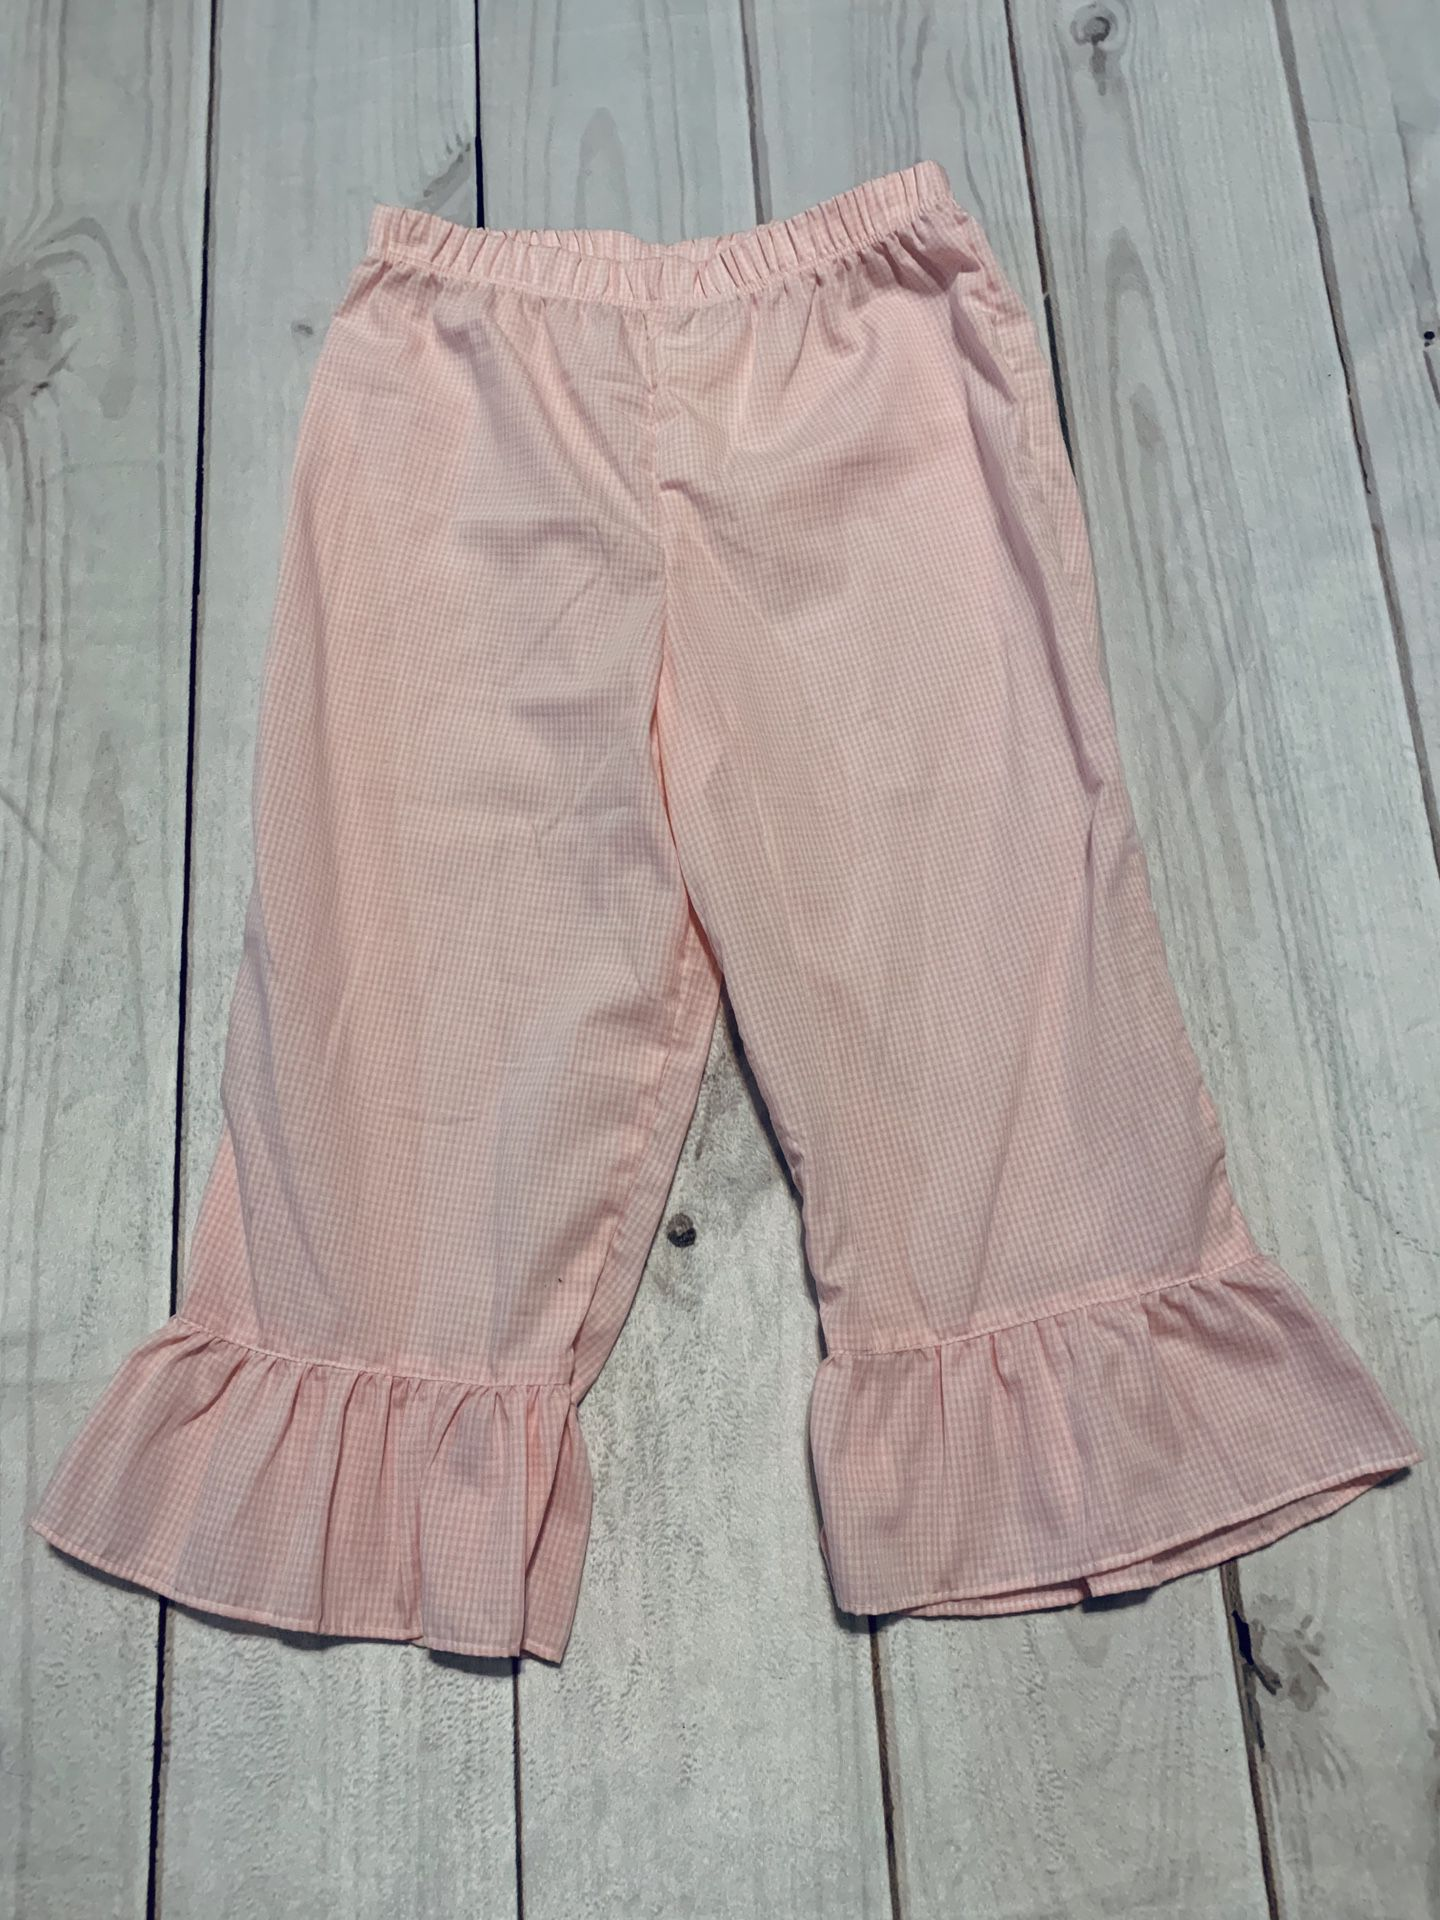 NWT Pink Gingham Ruffle Pants - Size 8